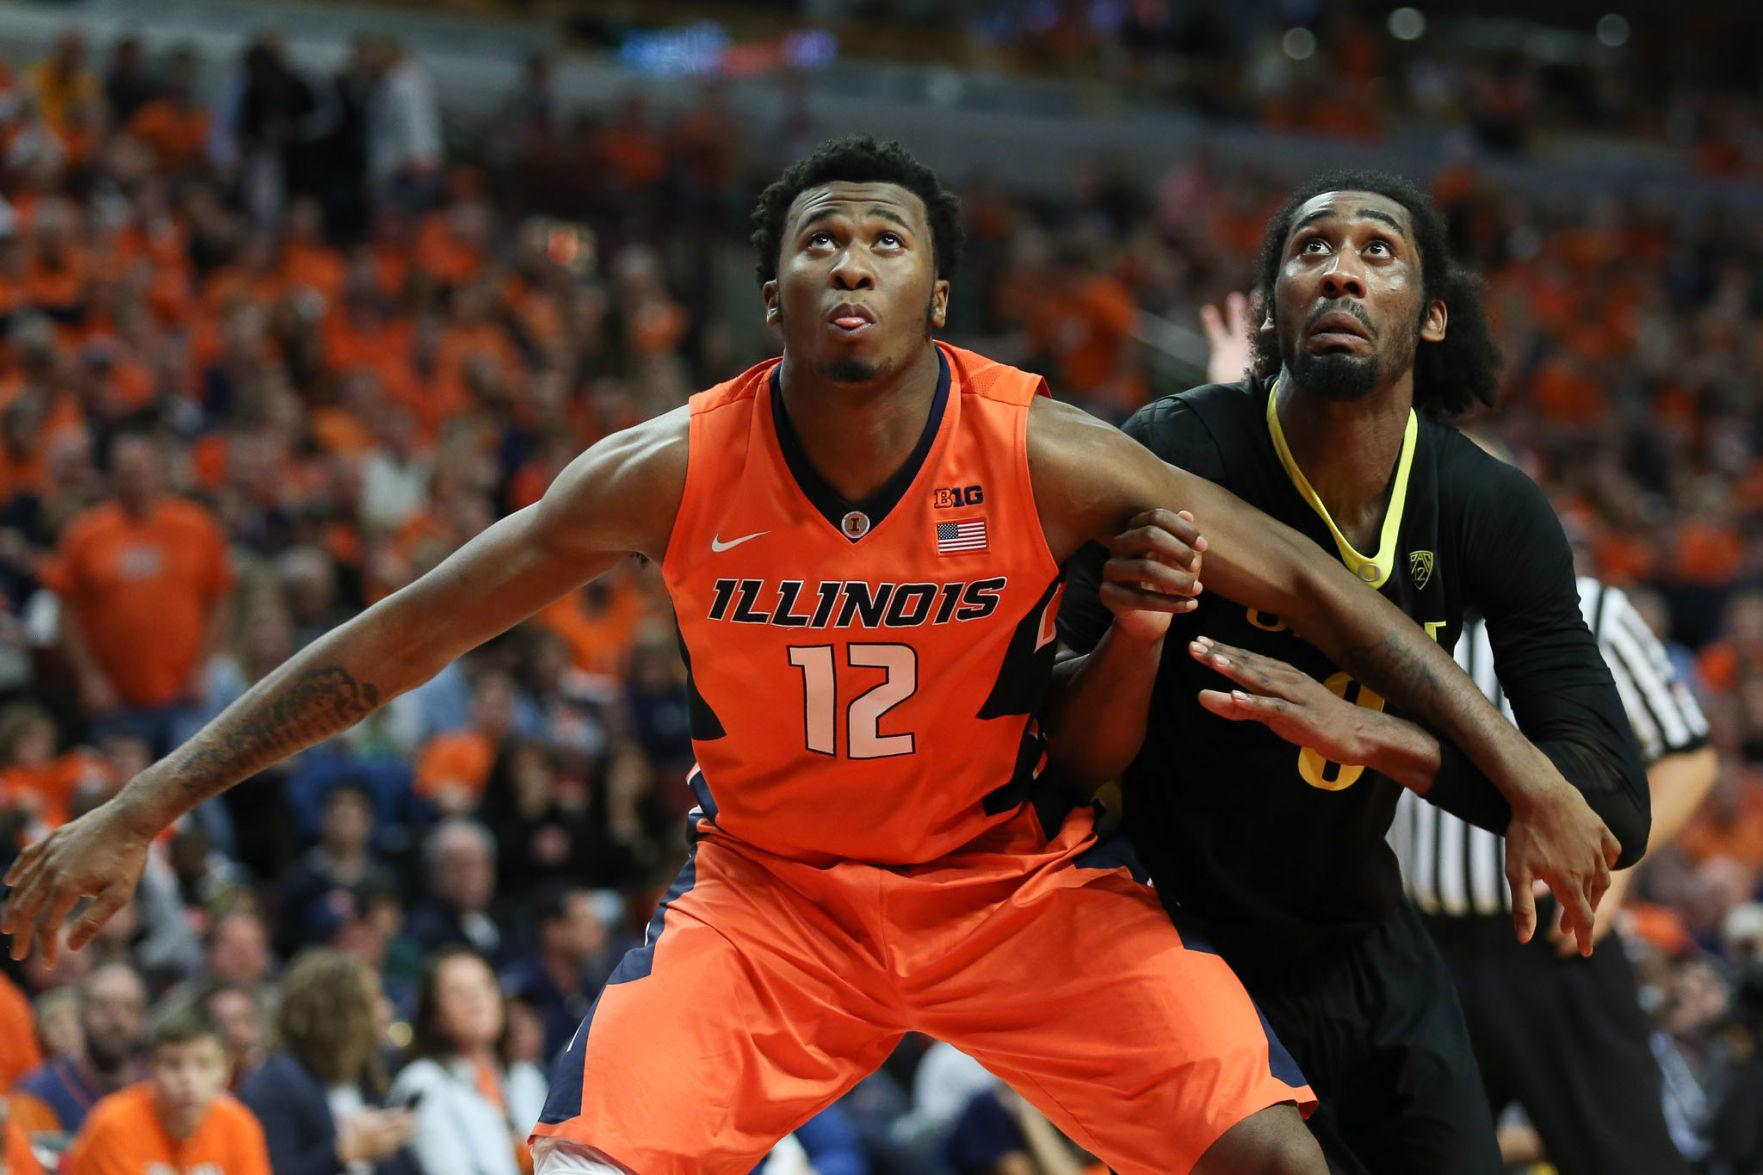 Leron Black (12) during Illinois's game against Oregon at the United Center in Chicago last season. The Illini face UIC there on Saturday with a chance to rise above .500.